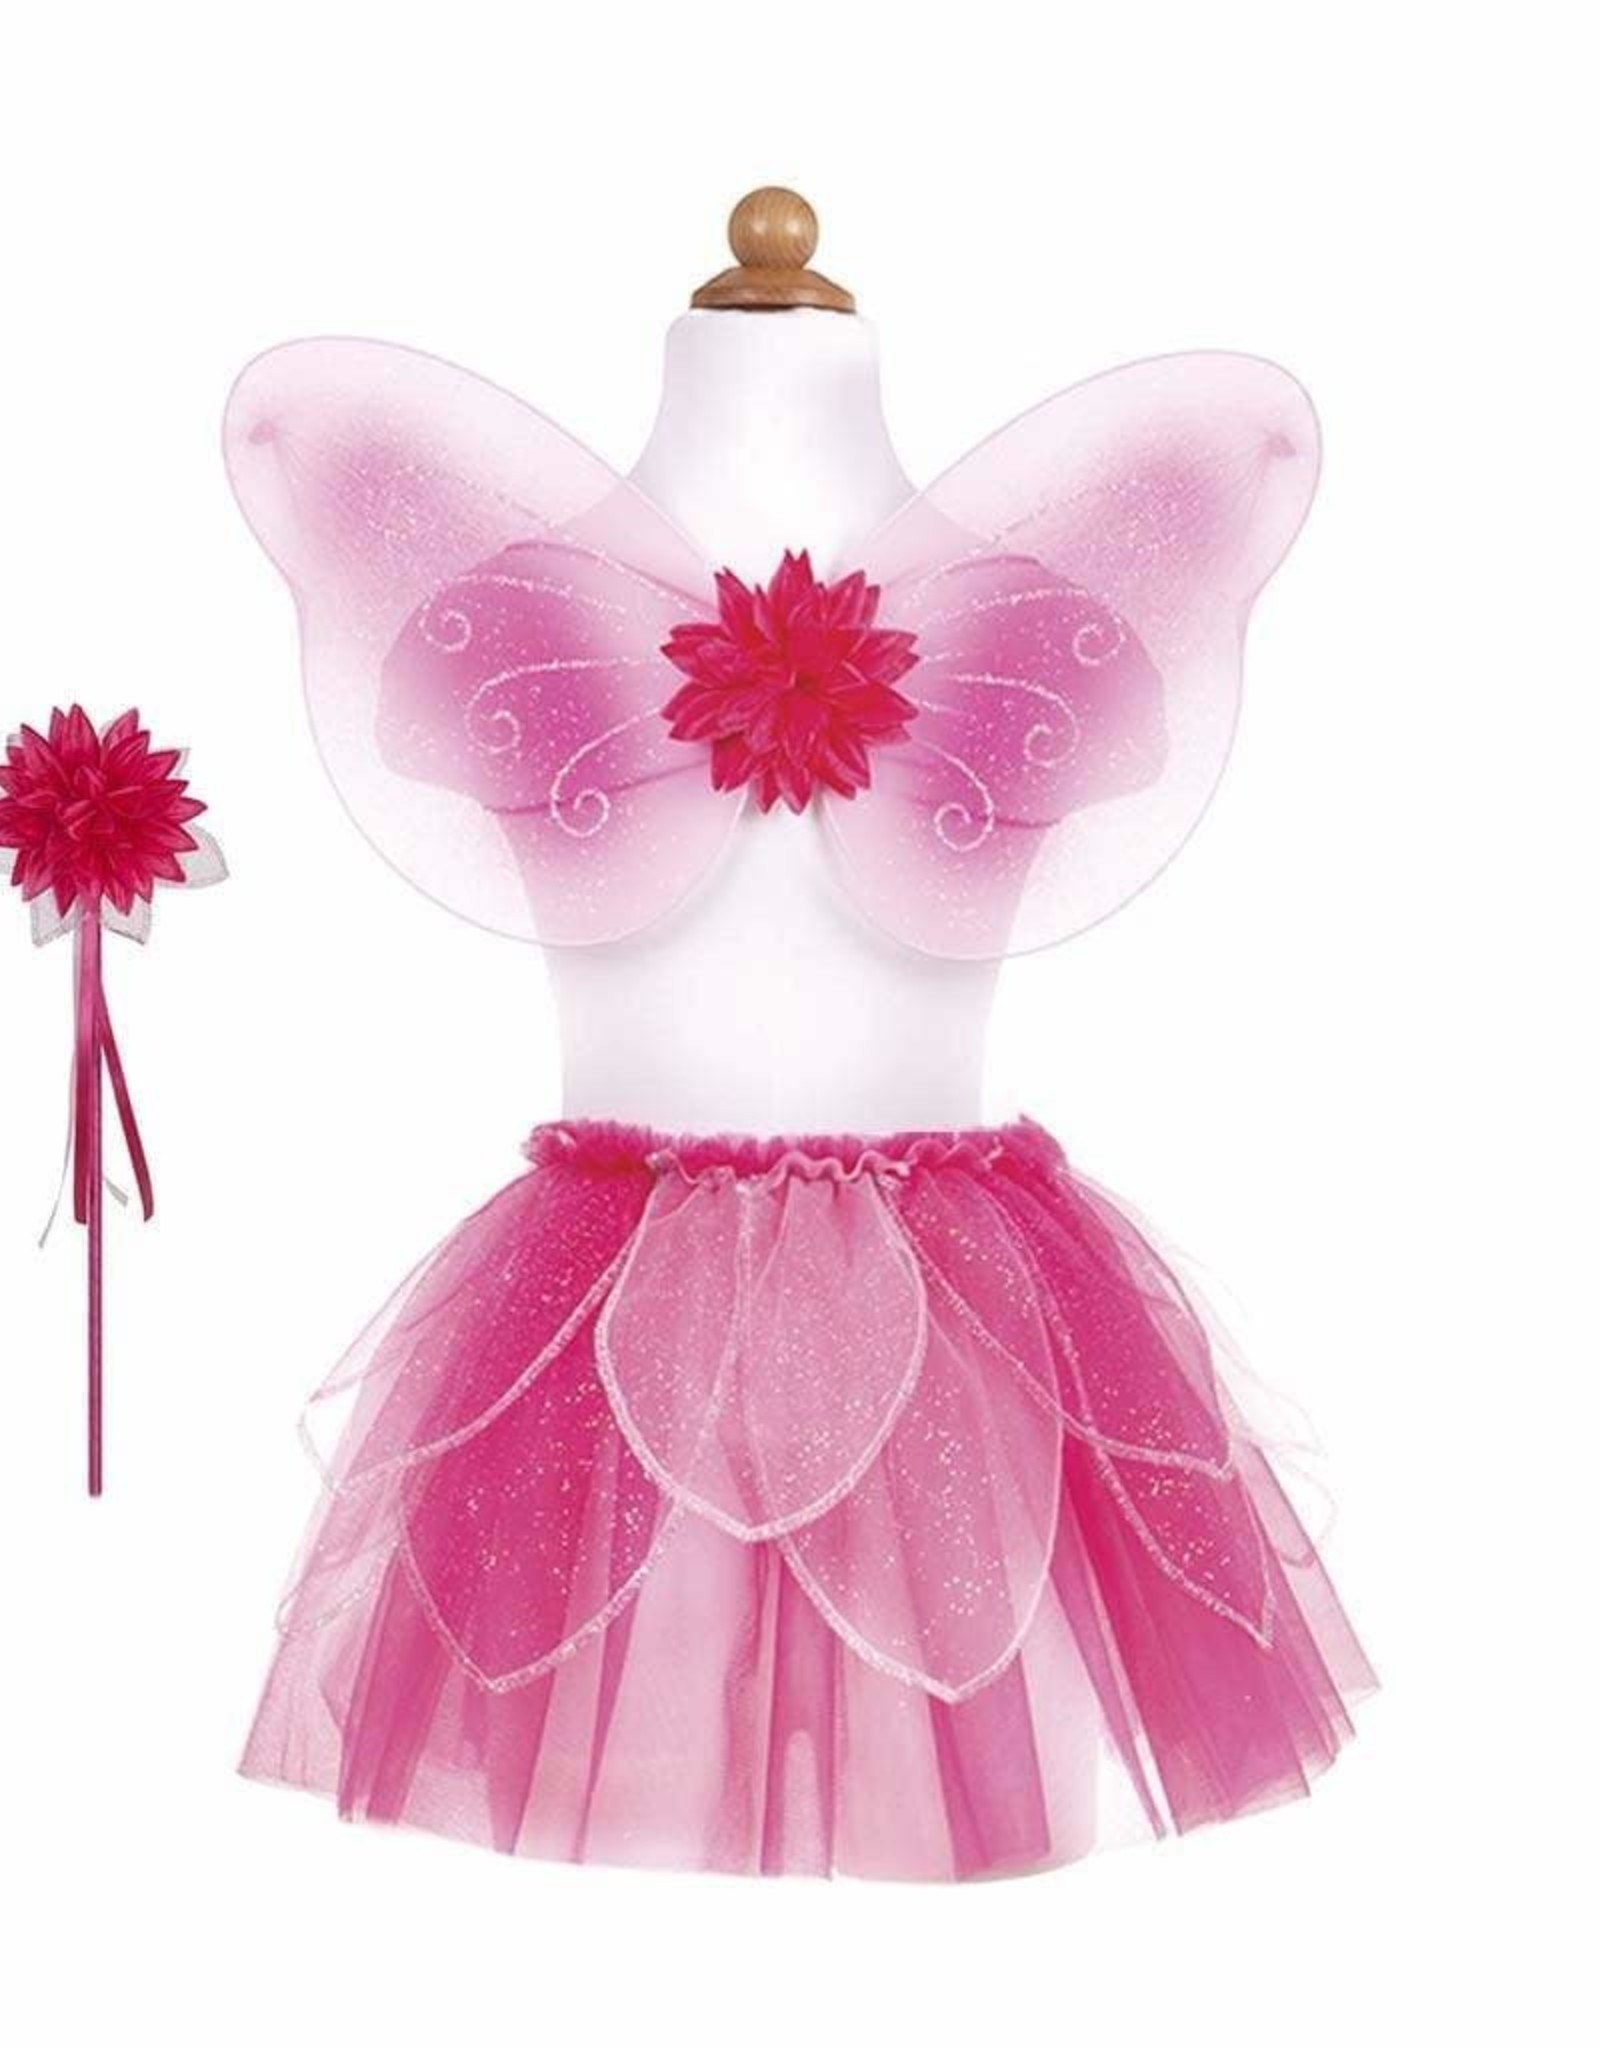 Great Pretenders Fancy Flutter Skirt With Wings & Wand, Pink, Size 4-6